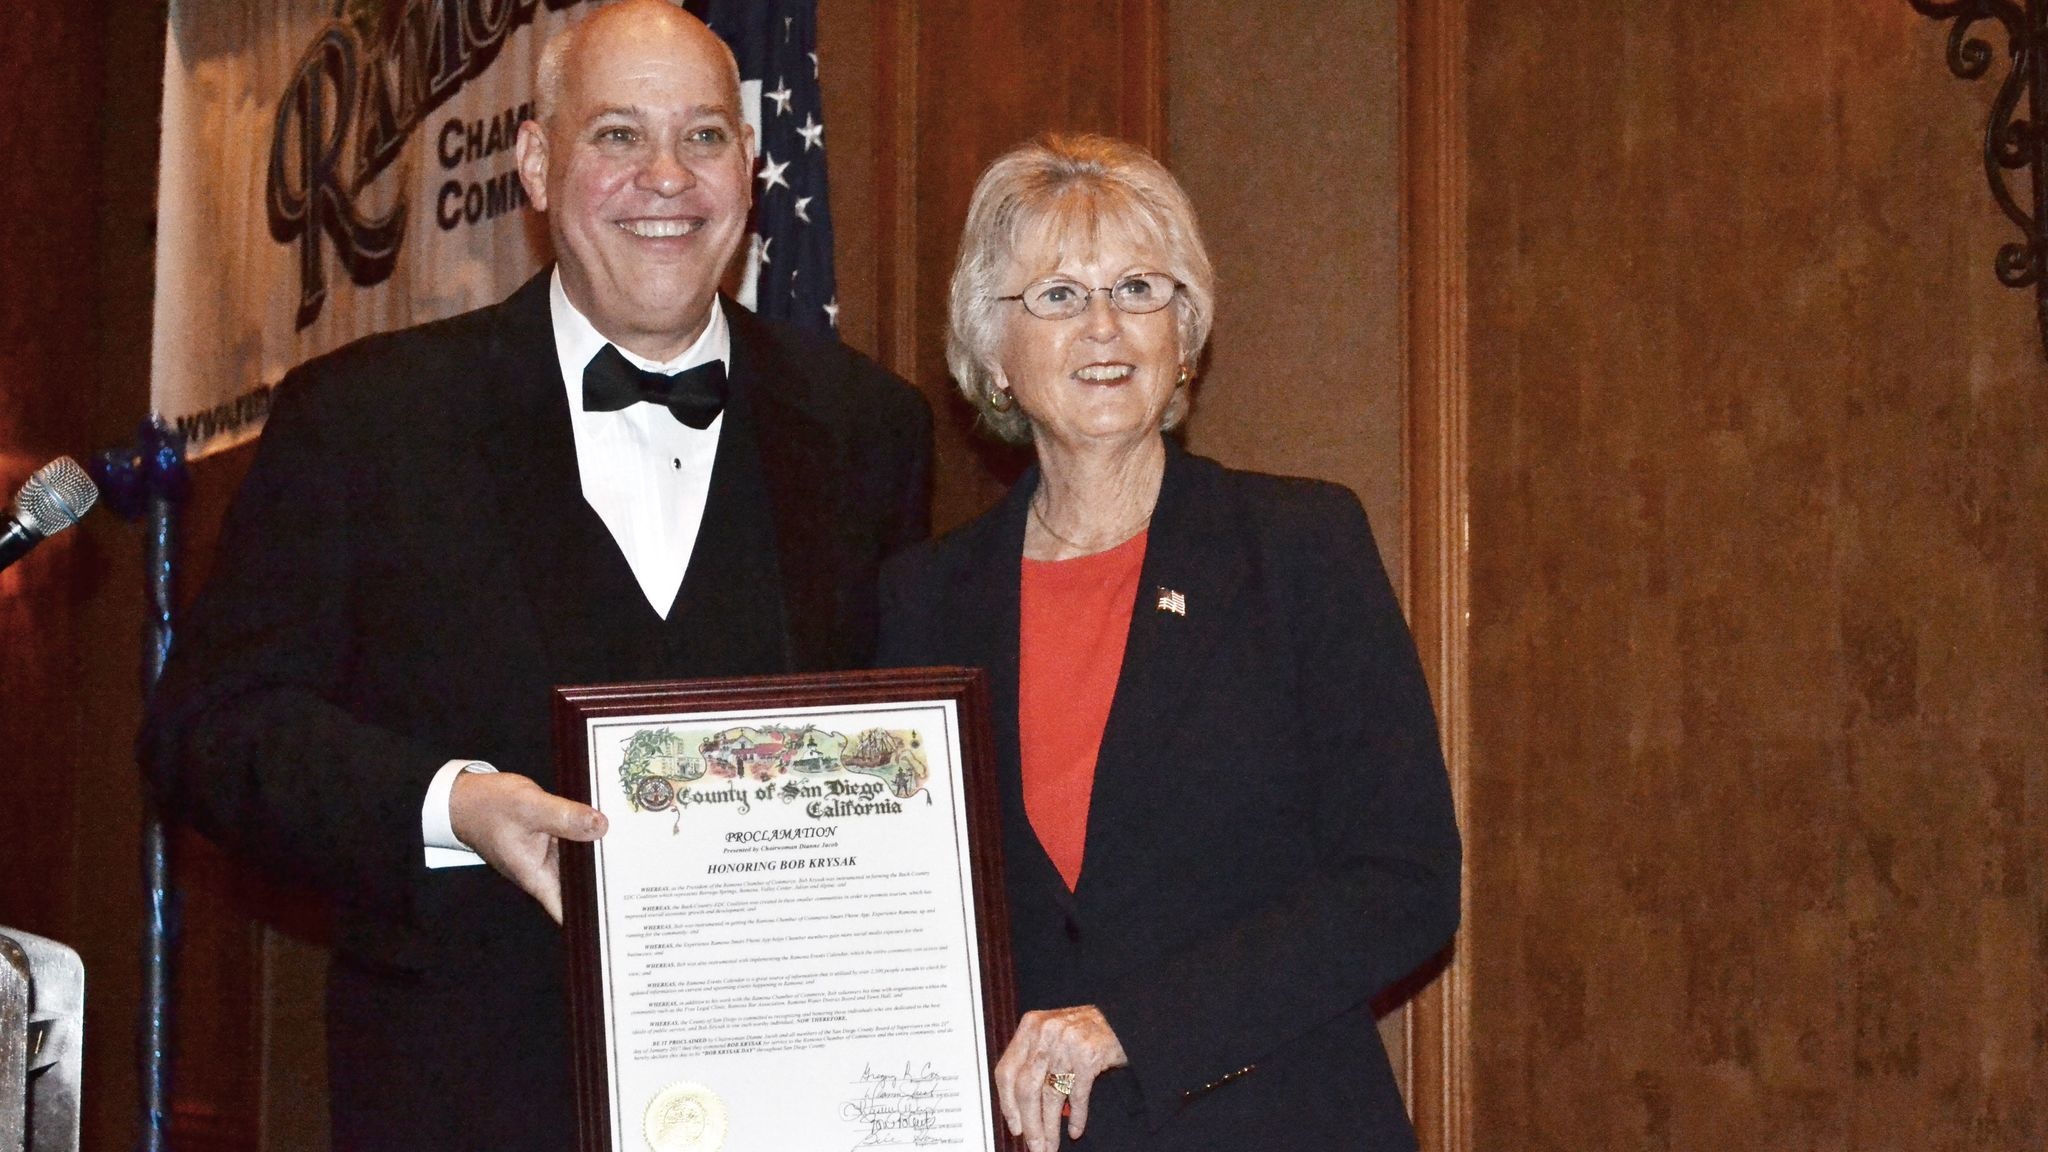 County Supervisor Dianne Jacob presents a County of San Diego proclamation honoring outgoing Ramona Chamber of Commerce President Bob Krysak.